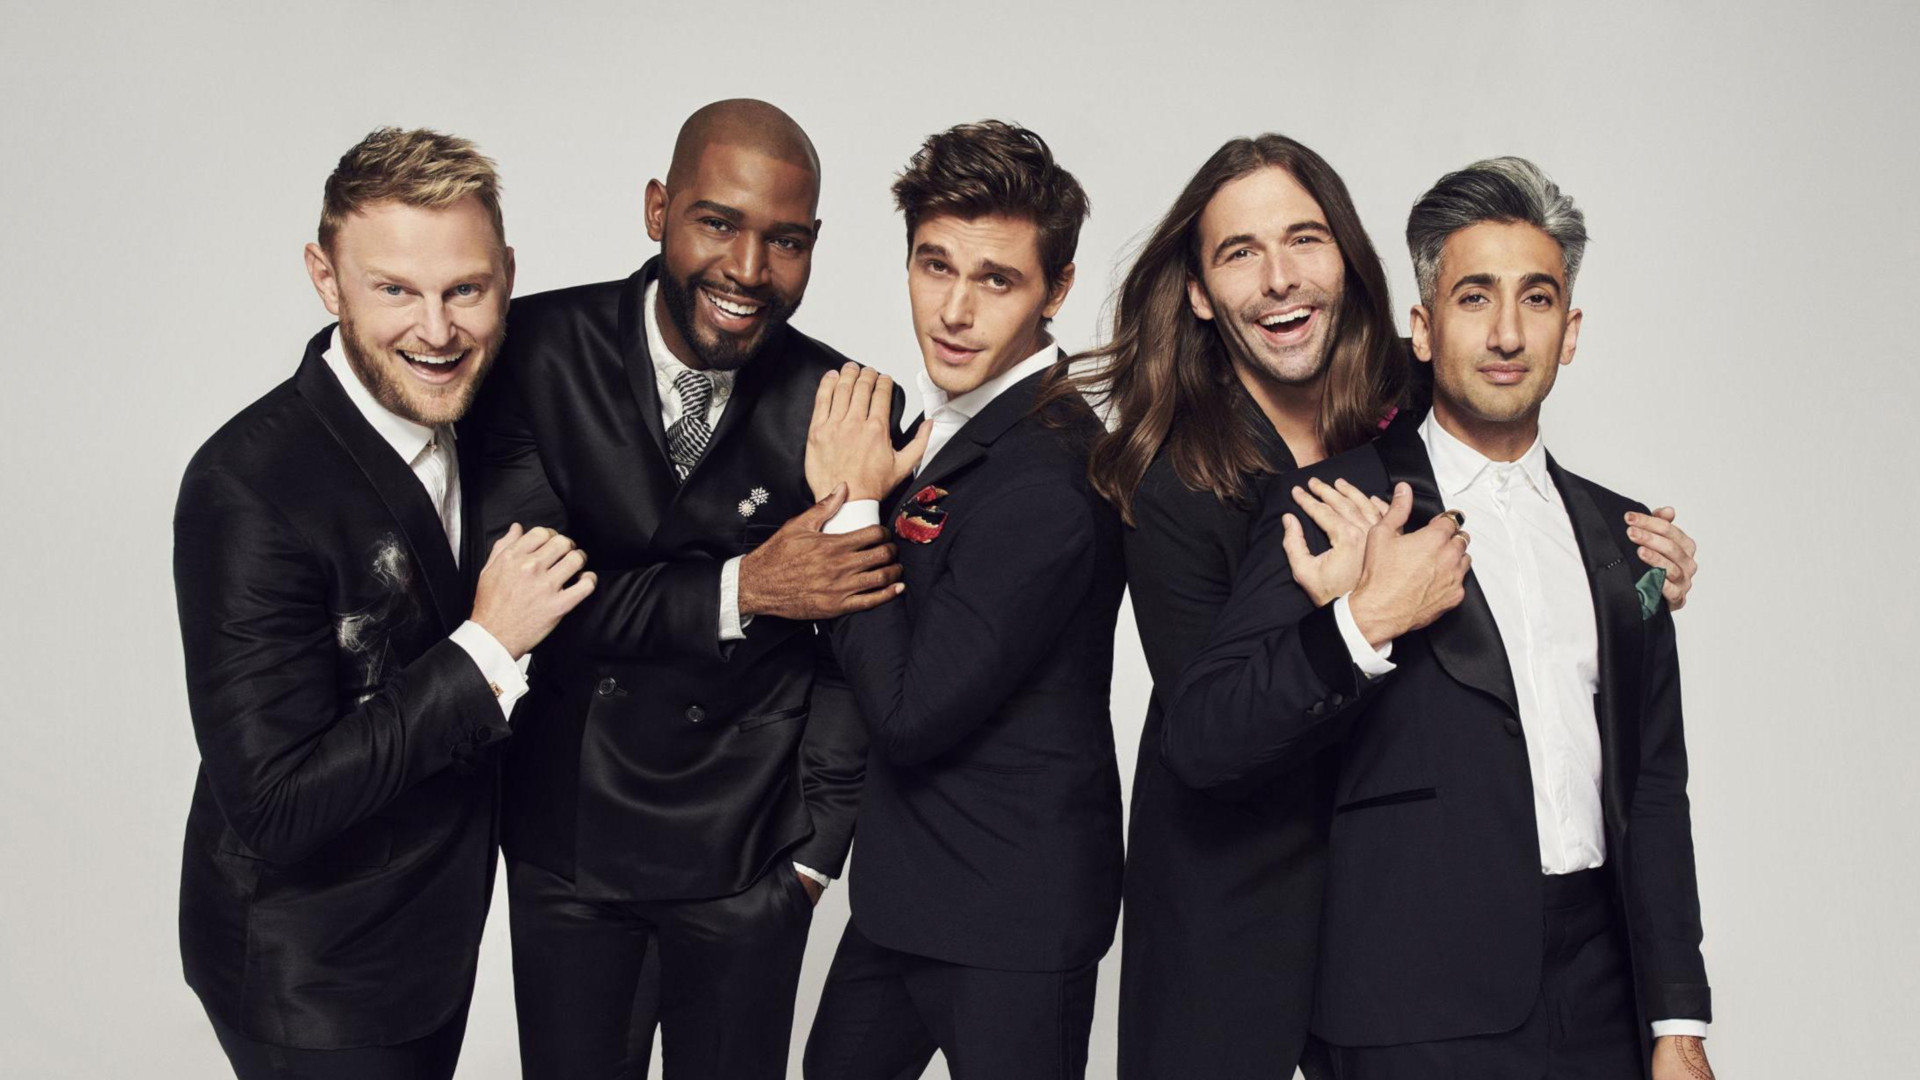 Queer Eye: Winning over hearts and minds while making over style